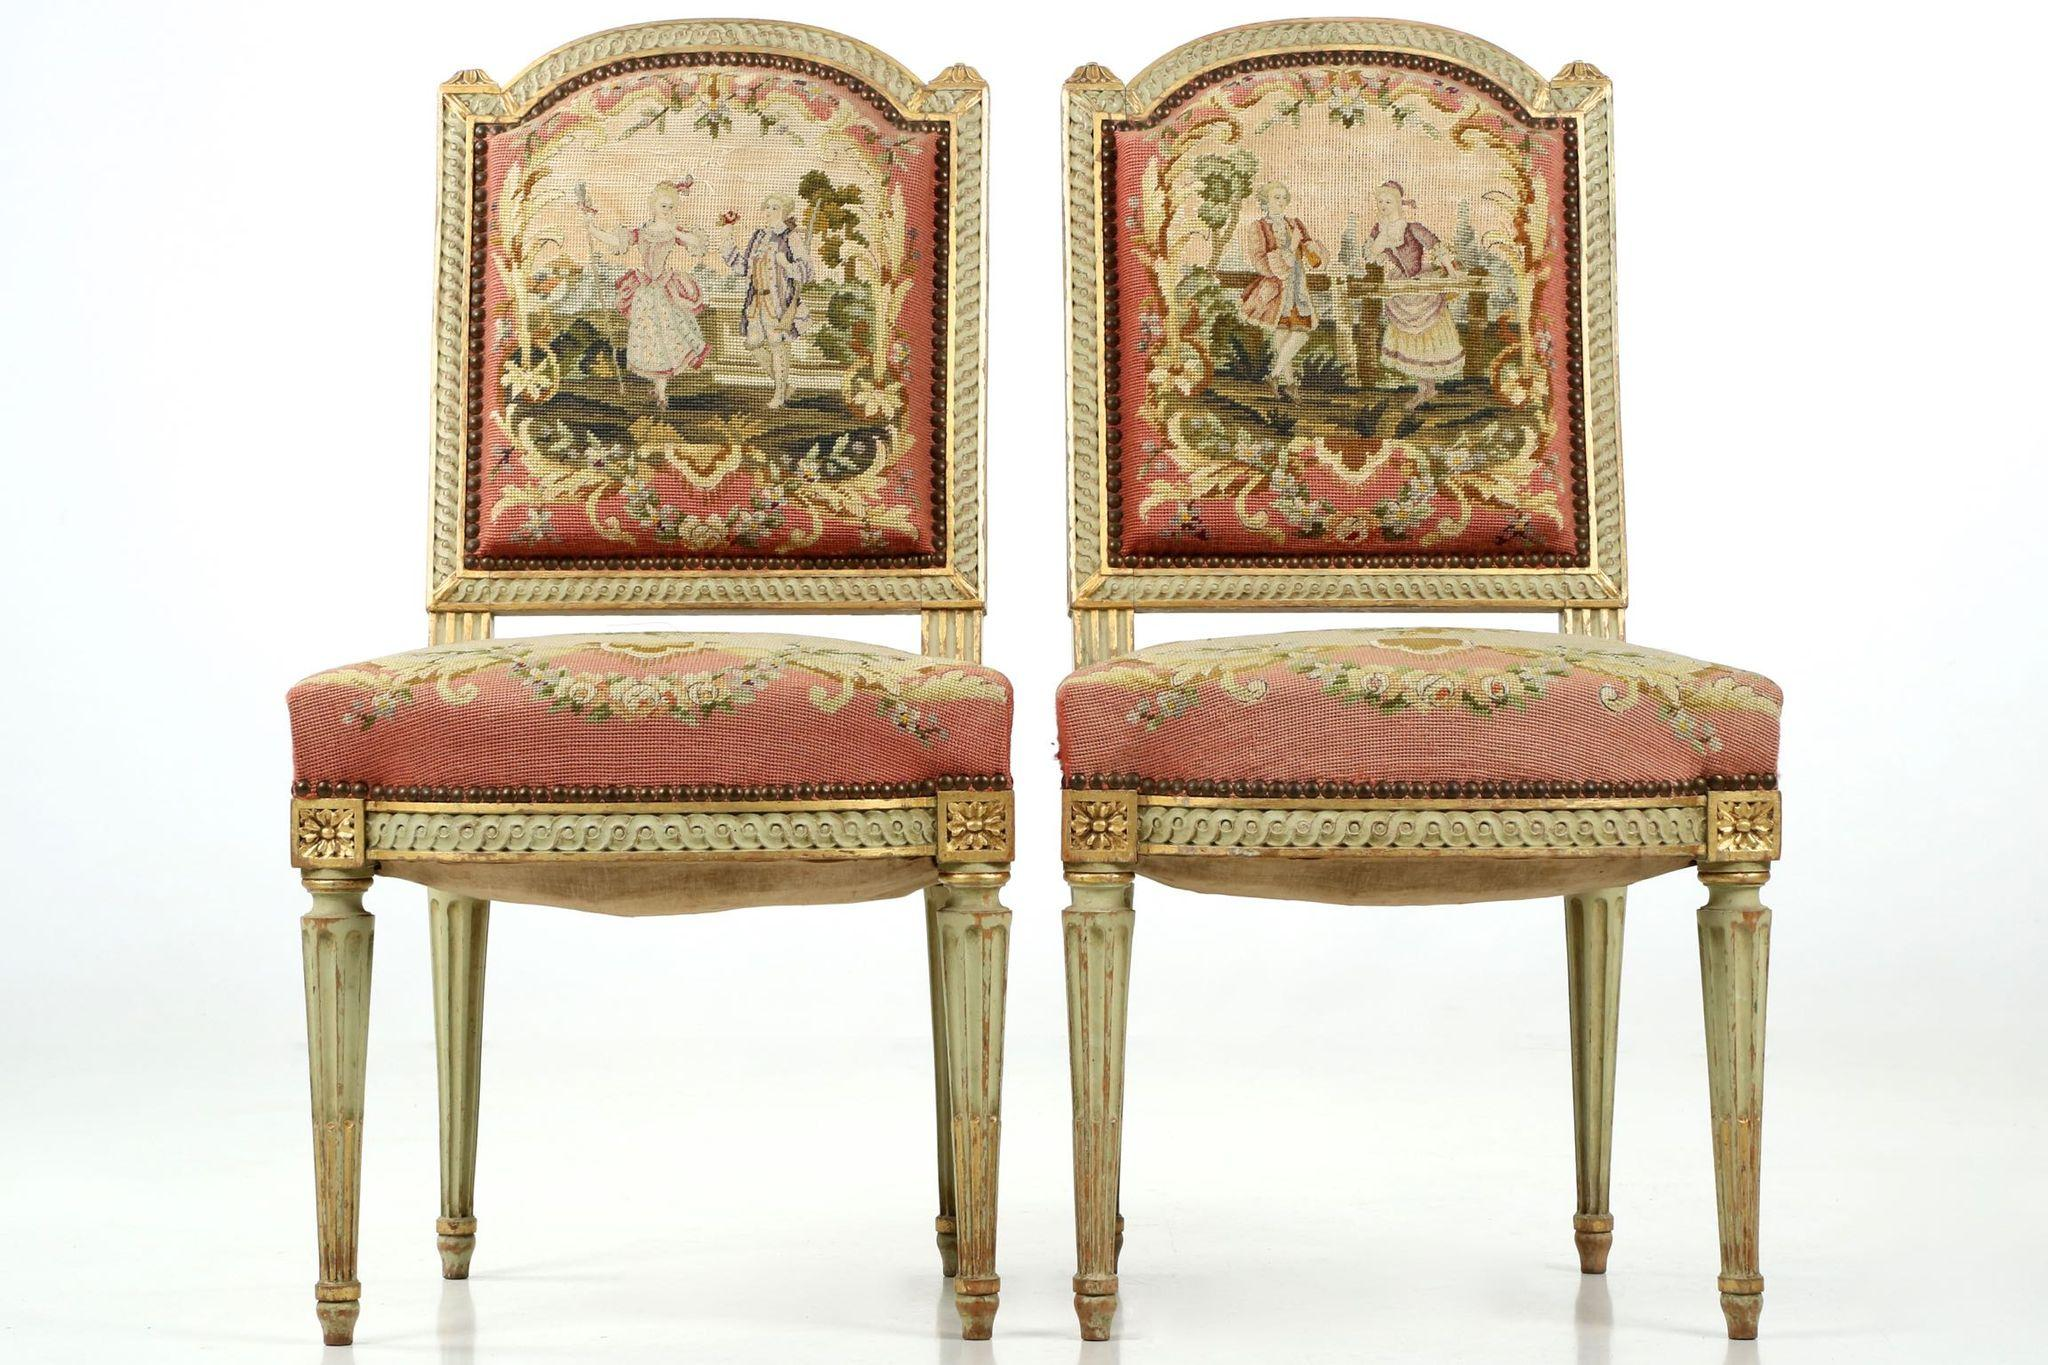 Antique louis xvi chair - Roll Over Large Image To Magnify Click Large Image To Zoom